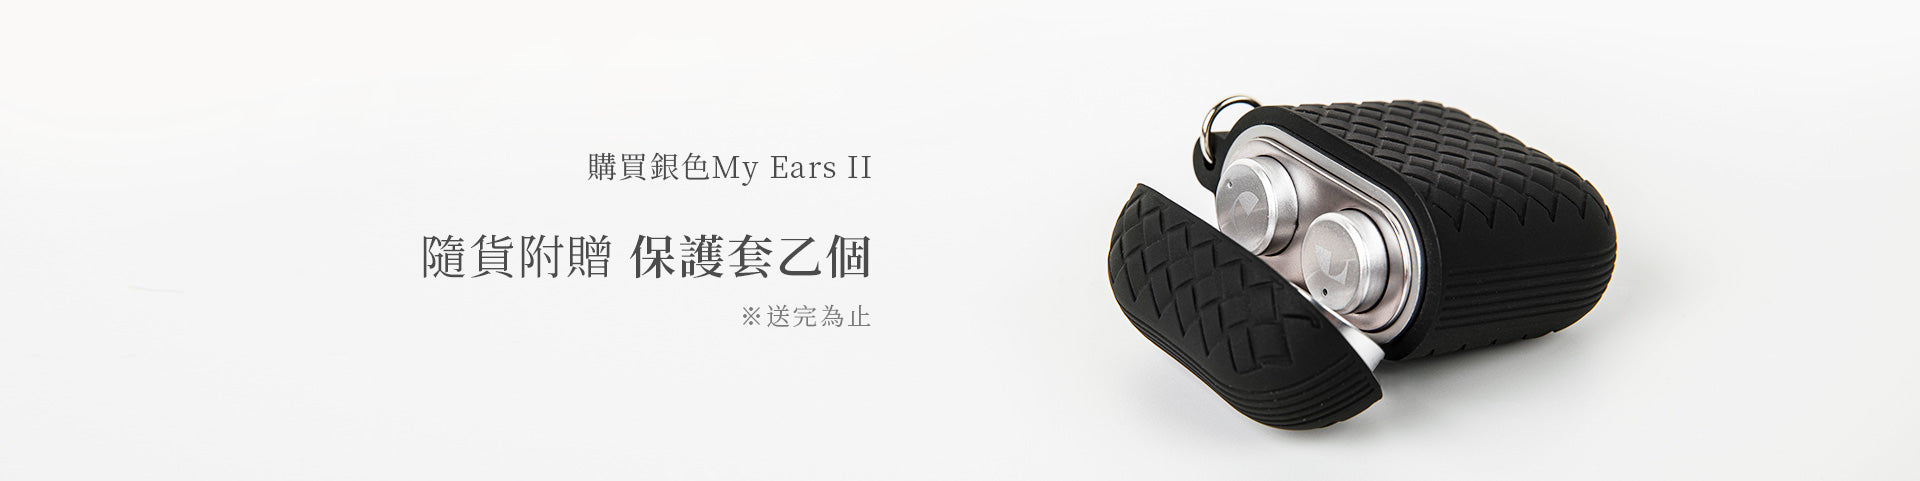 My Ears II 真無線藍牙耳機 NEP-TW1 Plus